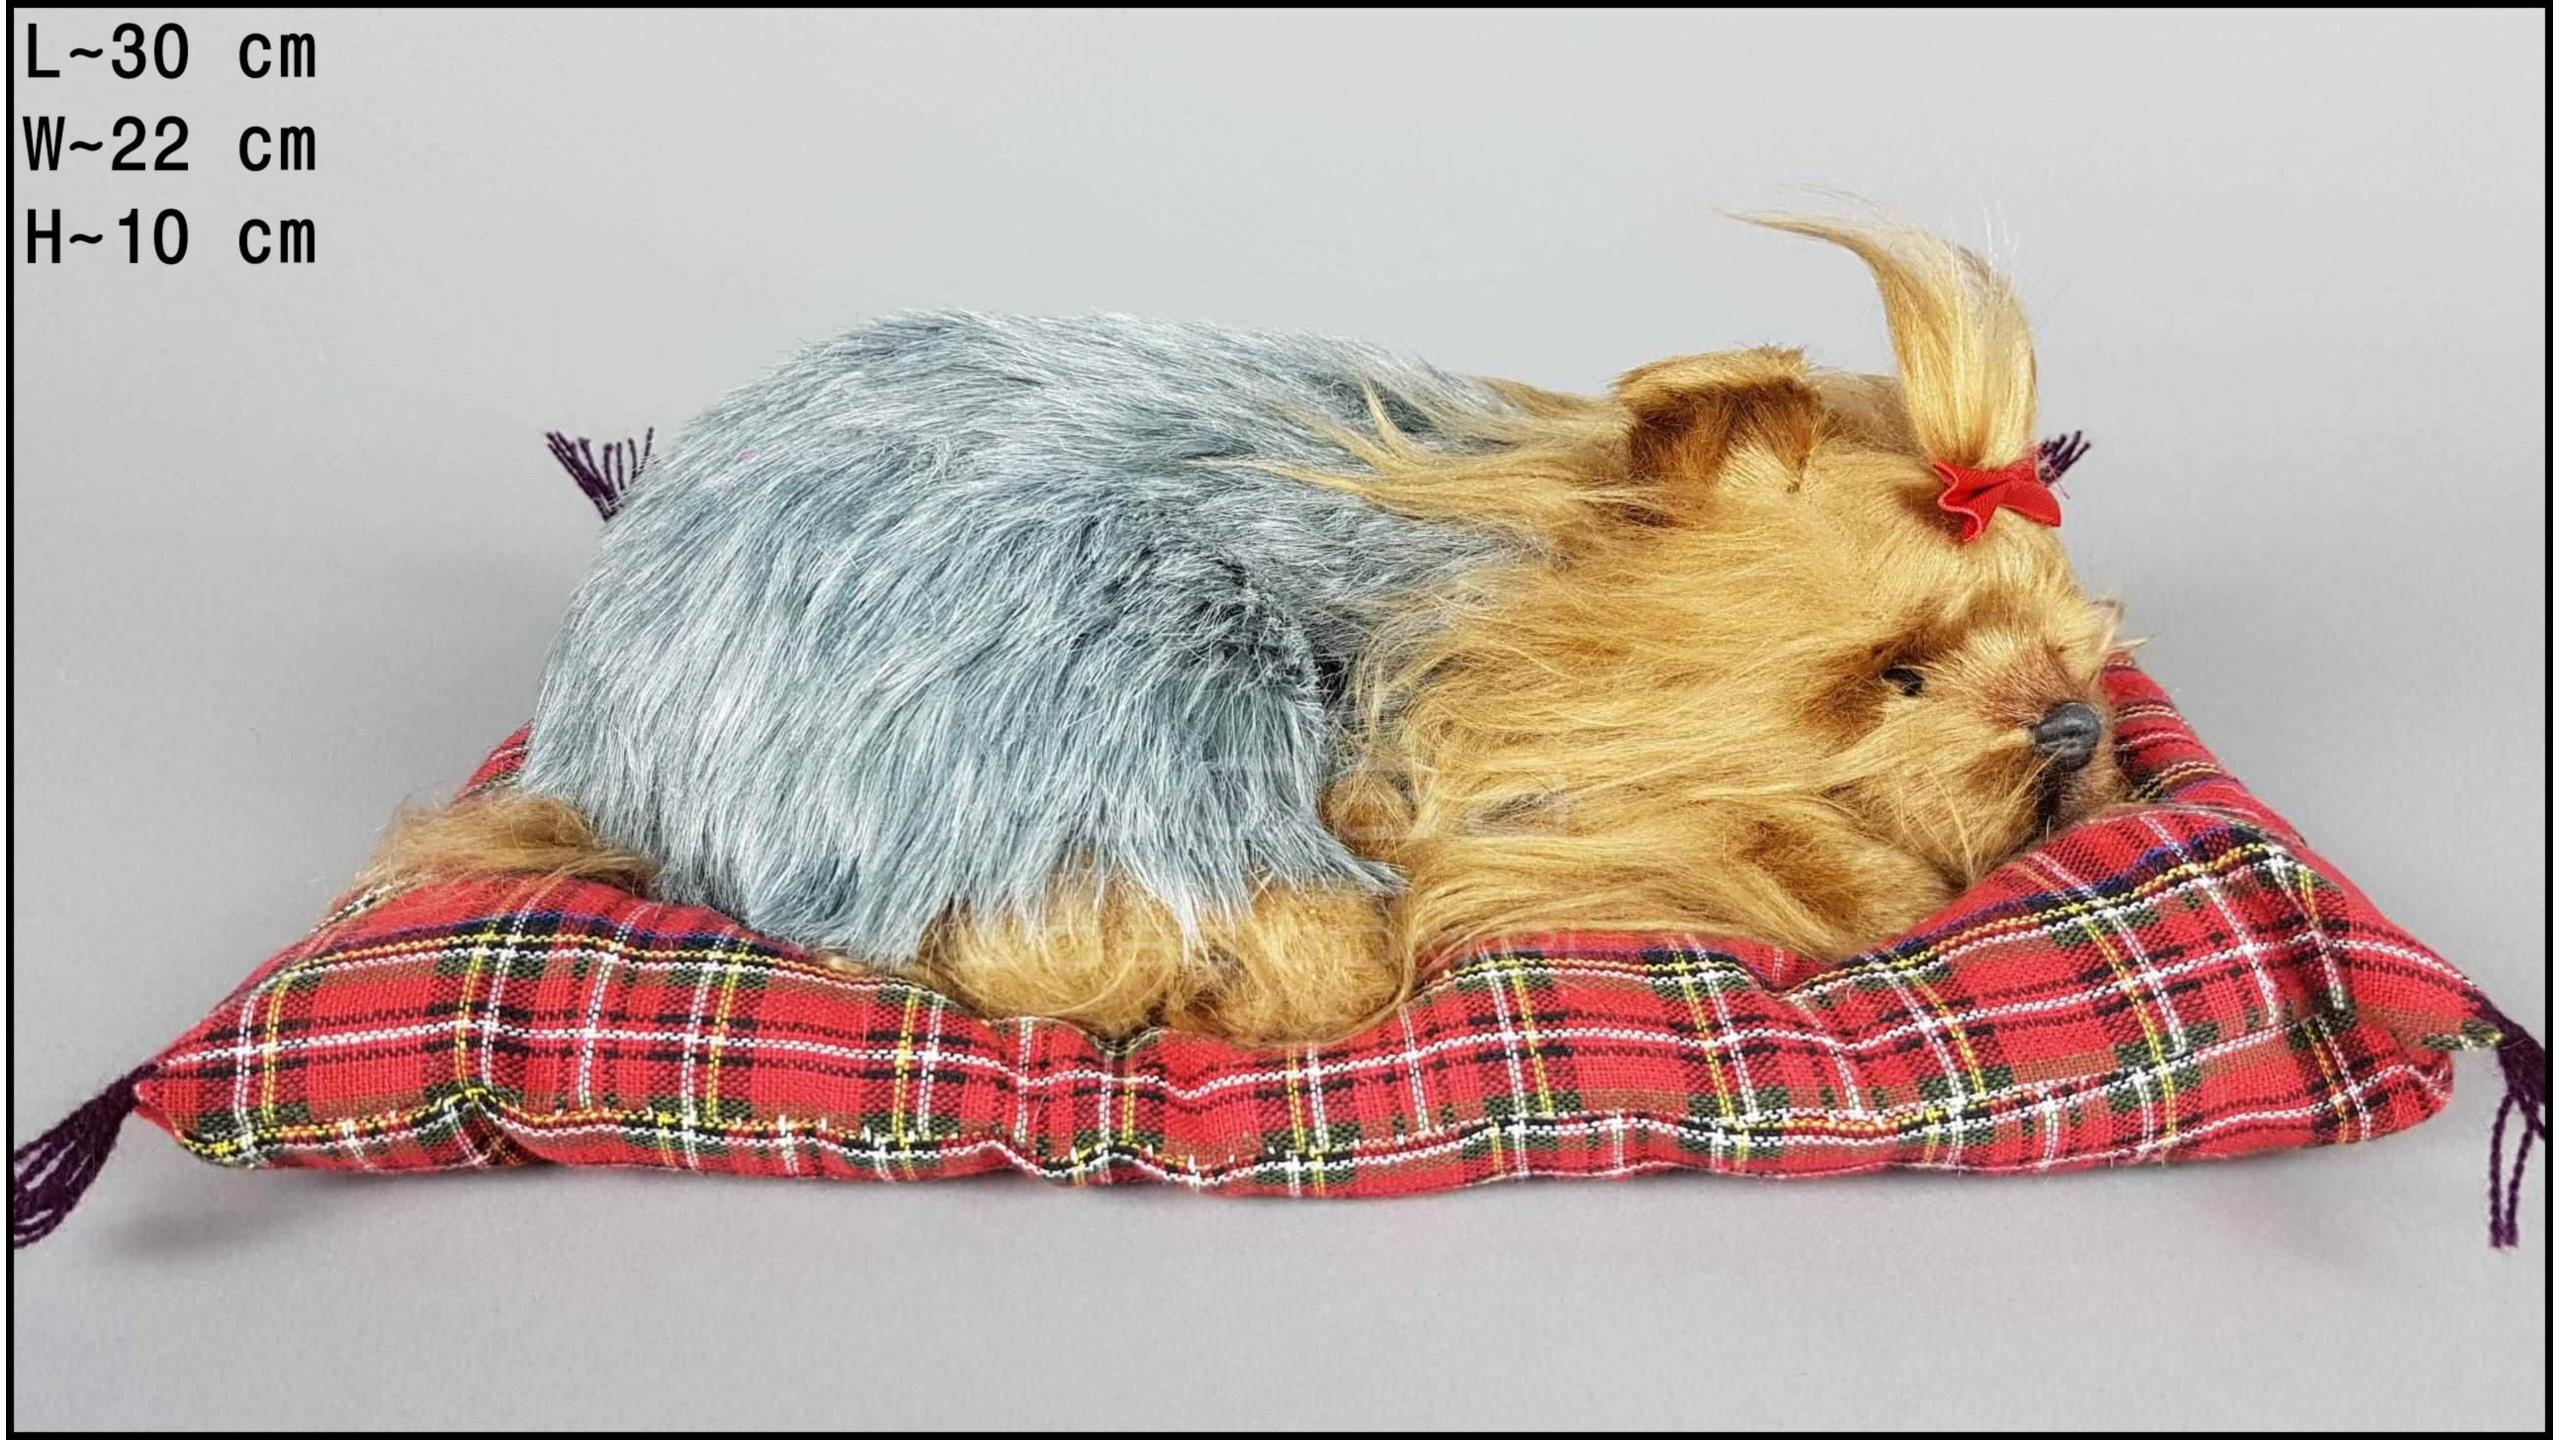 Yorkshire Terrier on a pillow - Size L